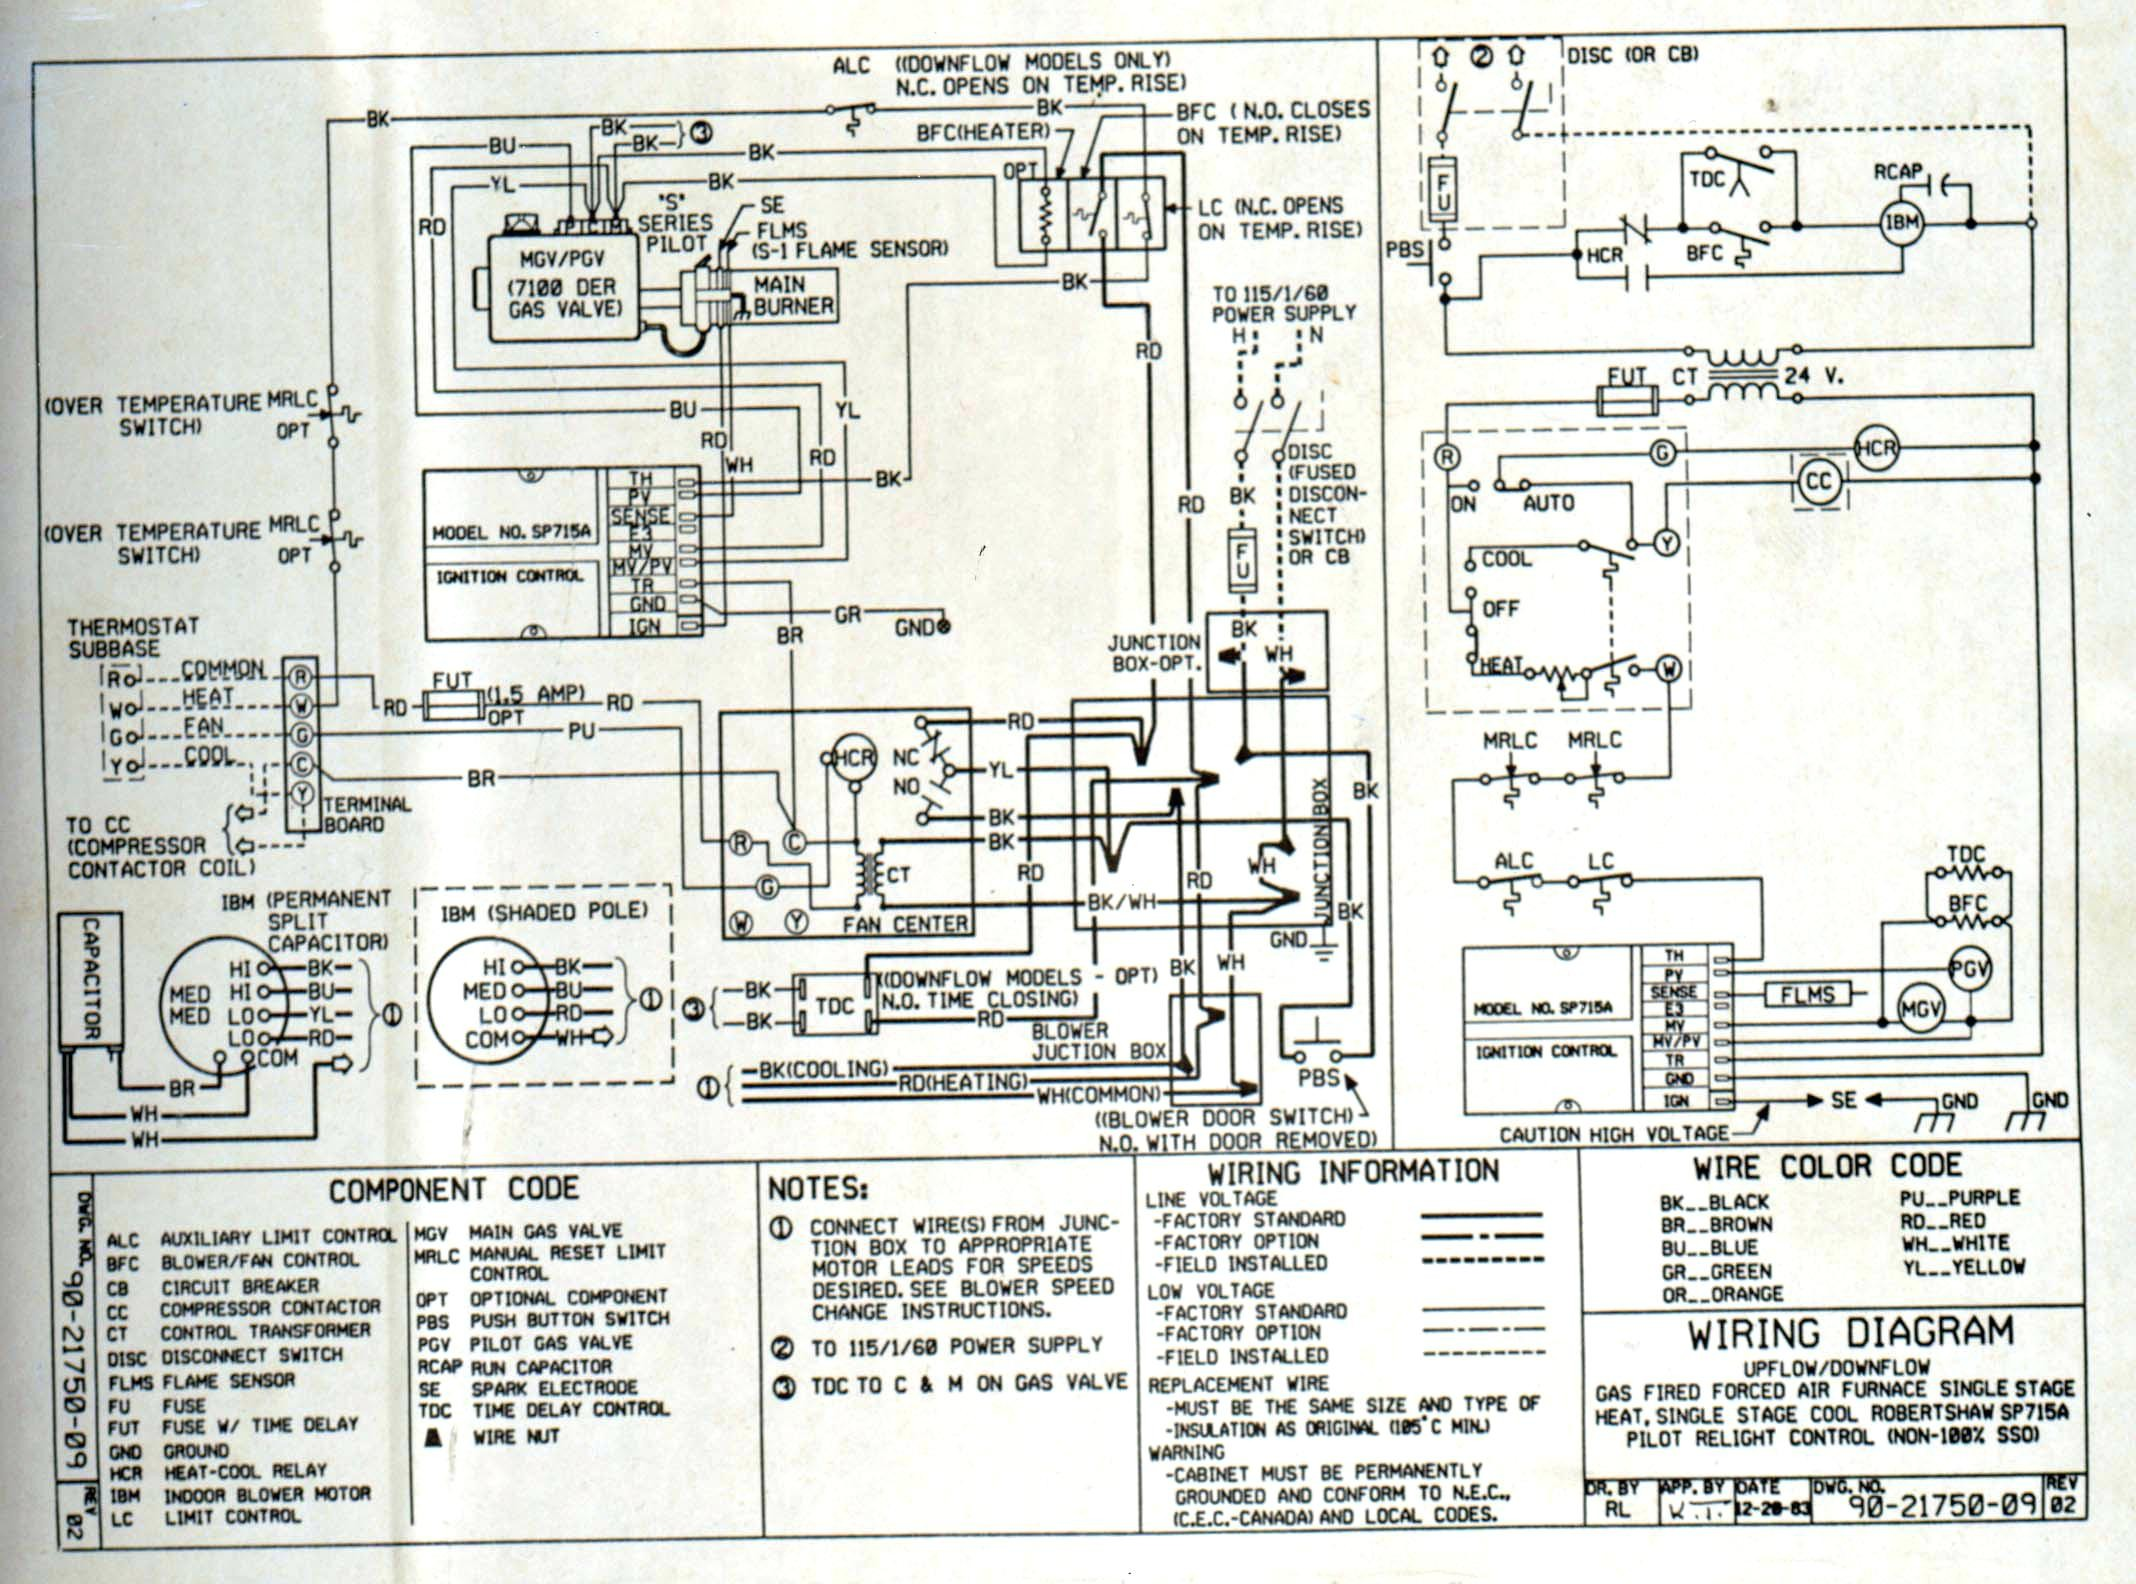 Carrier Package Unit Wiring Diagram Wiring Data - Payne package unit wiring diagram